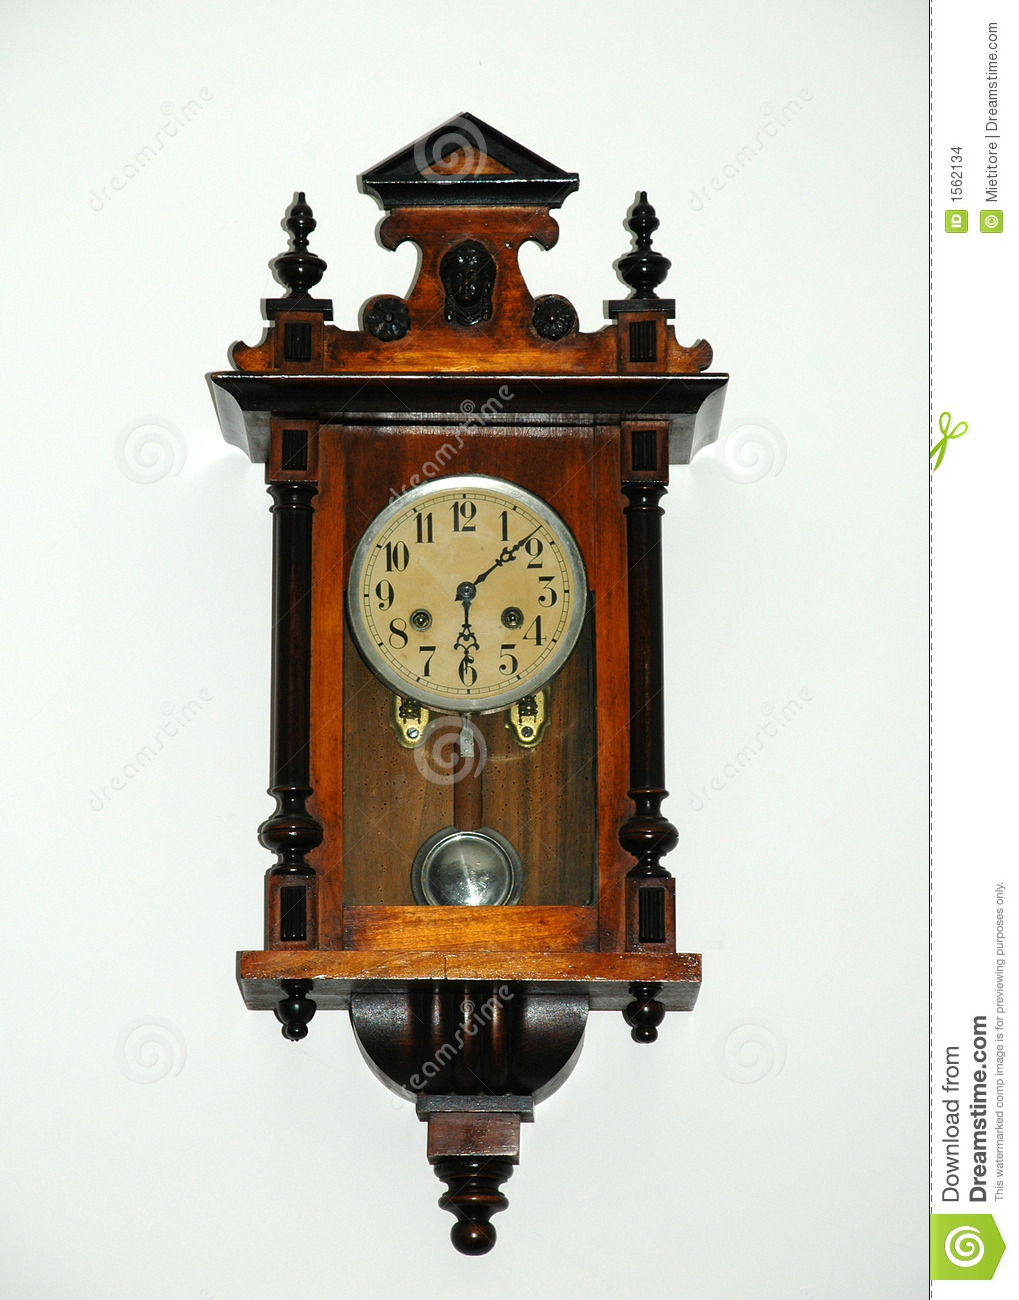 horloge 1900 de pendule images stock image 1562134. Black Bedroom Furniture Sets. Home Design Ideas